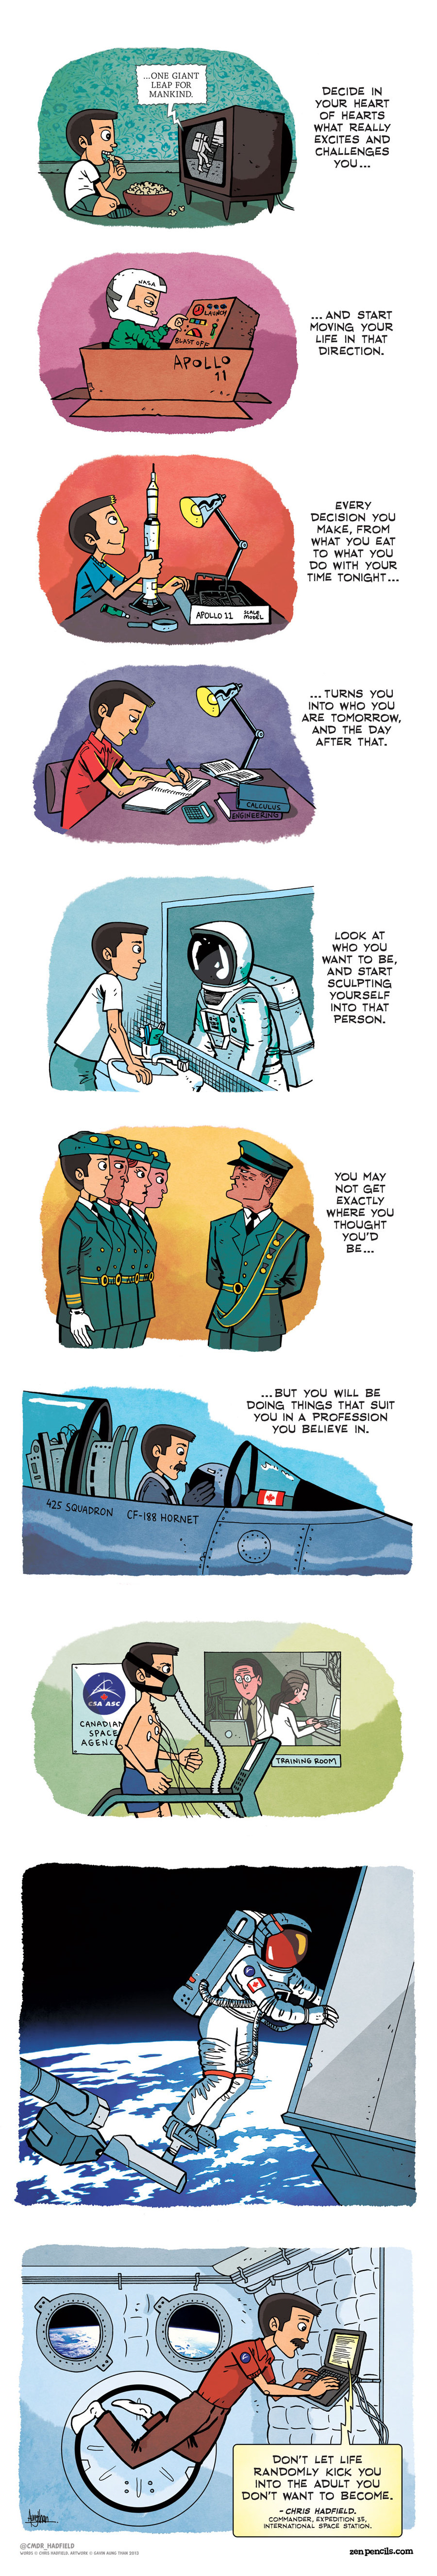 Zen Pencils for Mar 10, 2014 Comic Strip